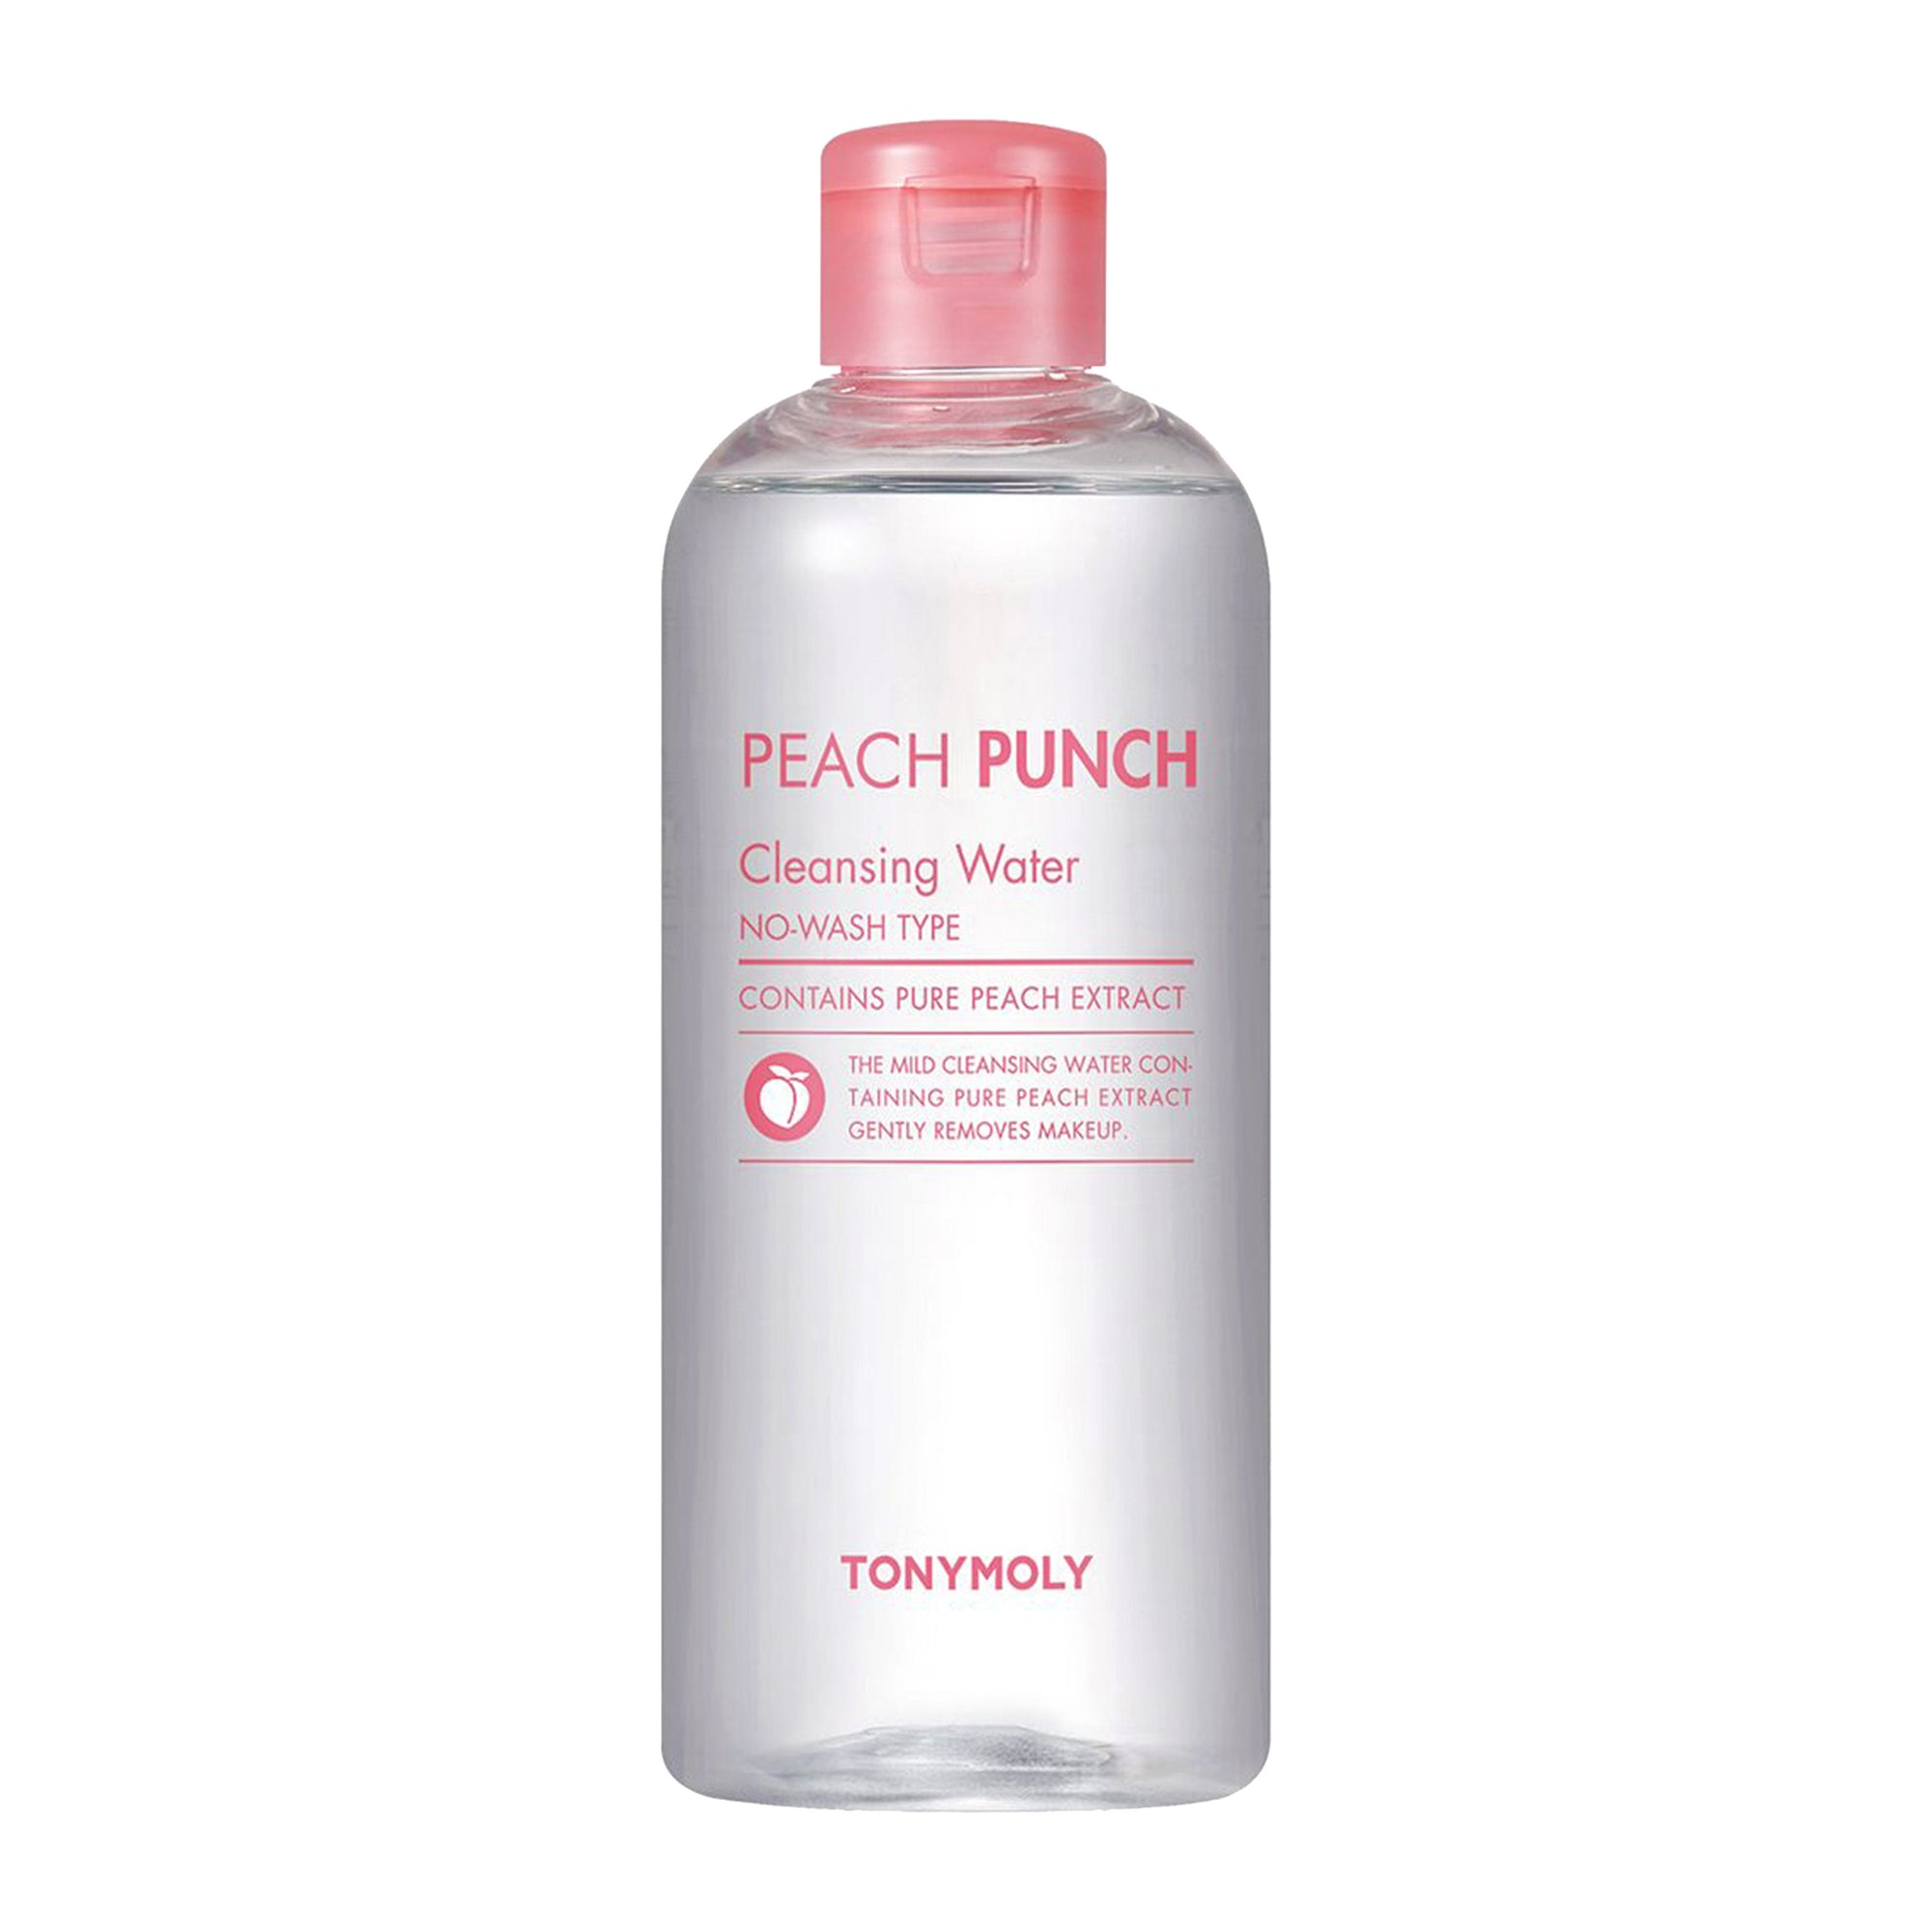 TONYMOLY Peach Punch Cleansing Water 300ml | Korean Skin Care